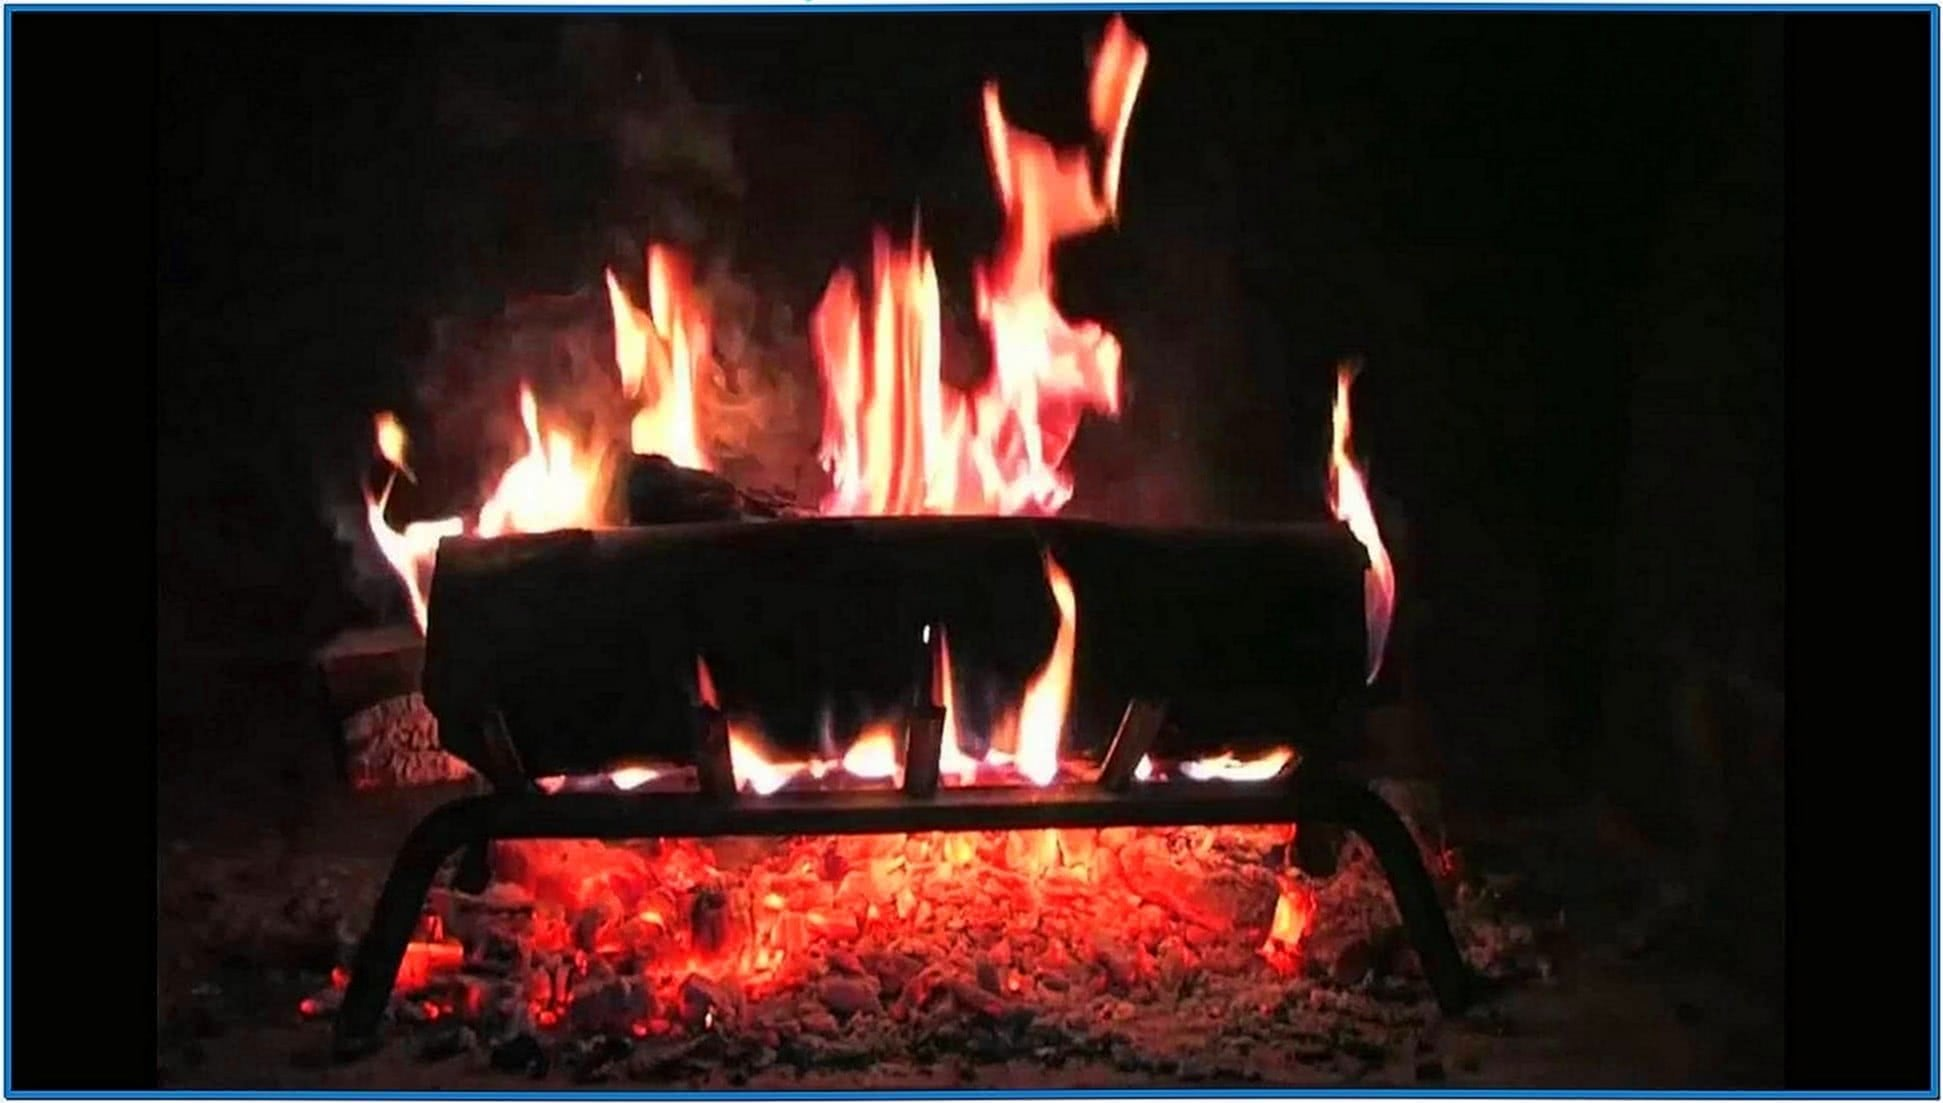 Burning Log Fire Screensaver Mac